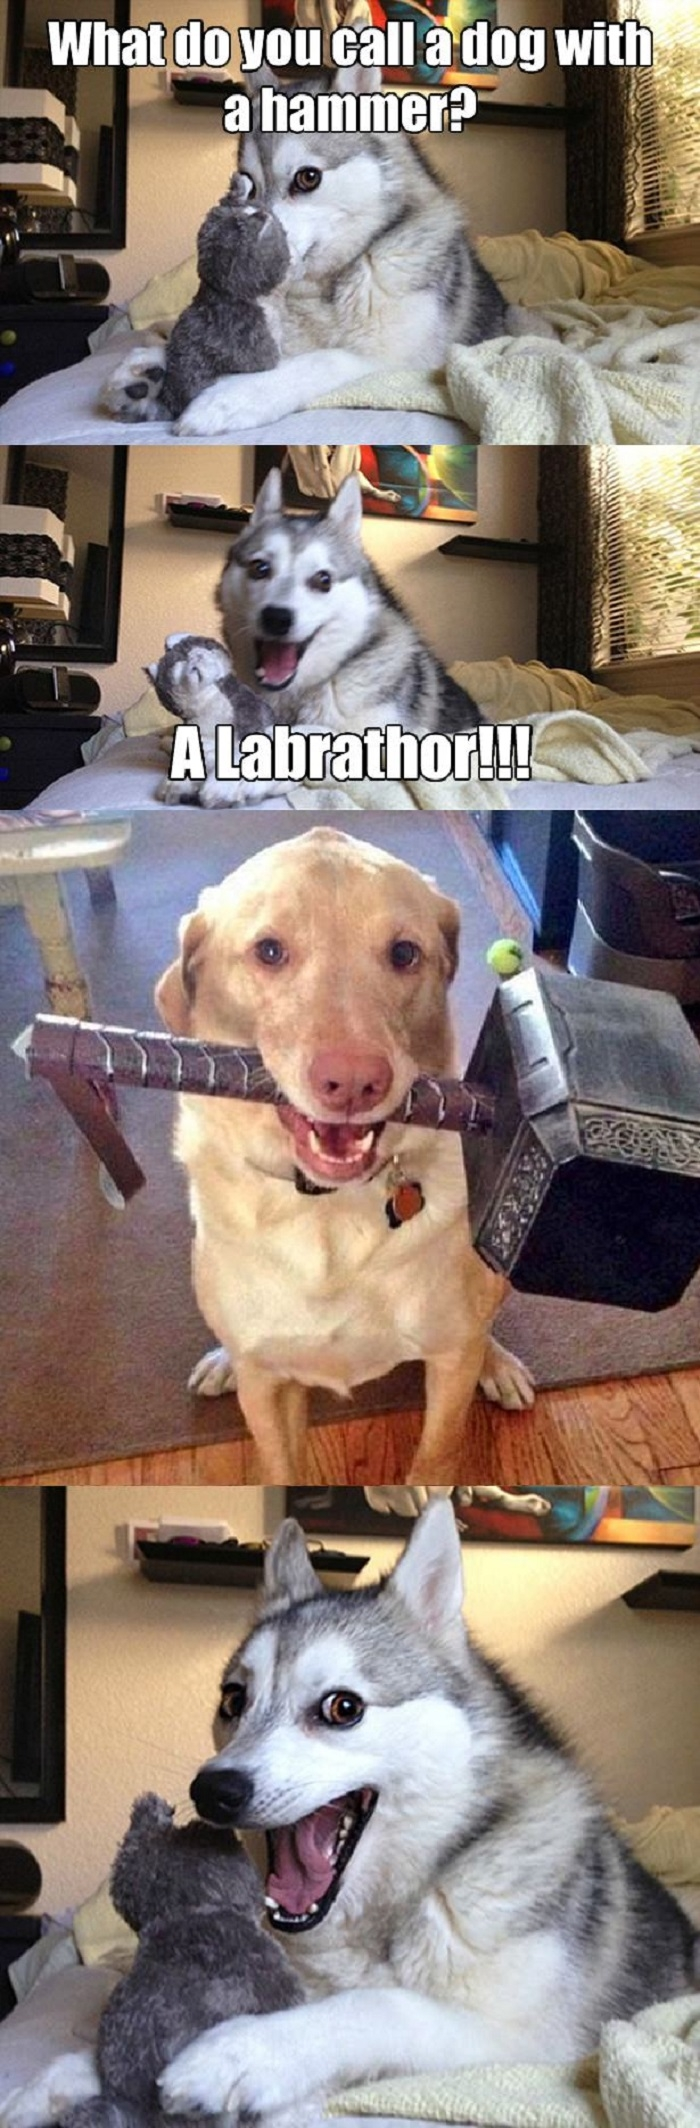 A dog with a hammer